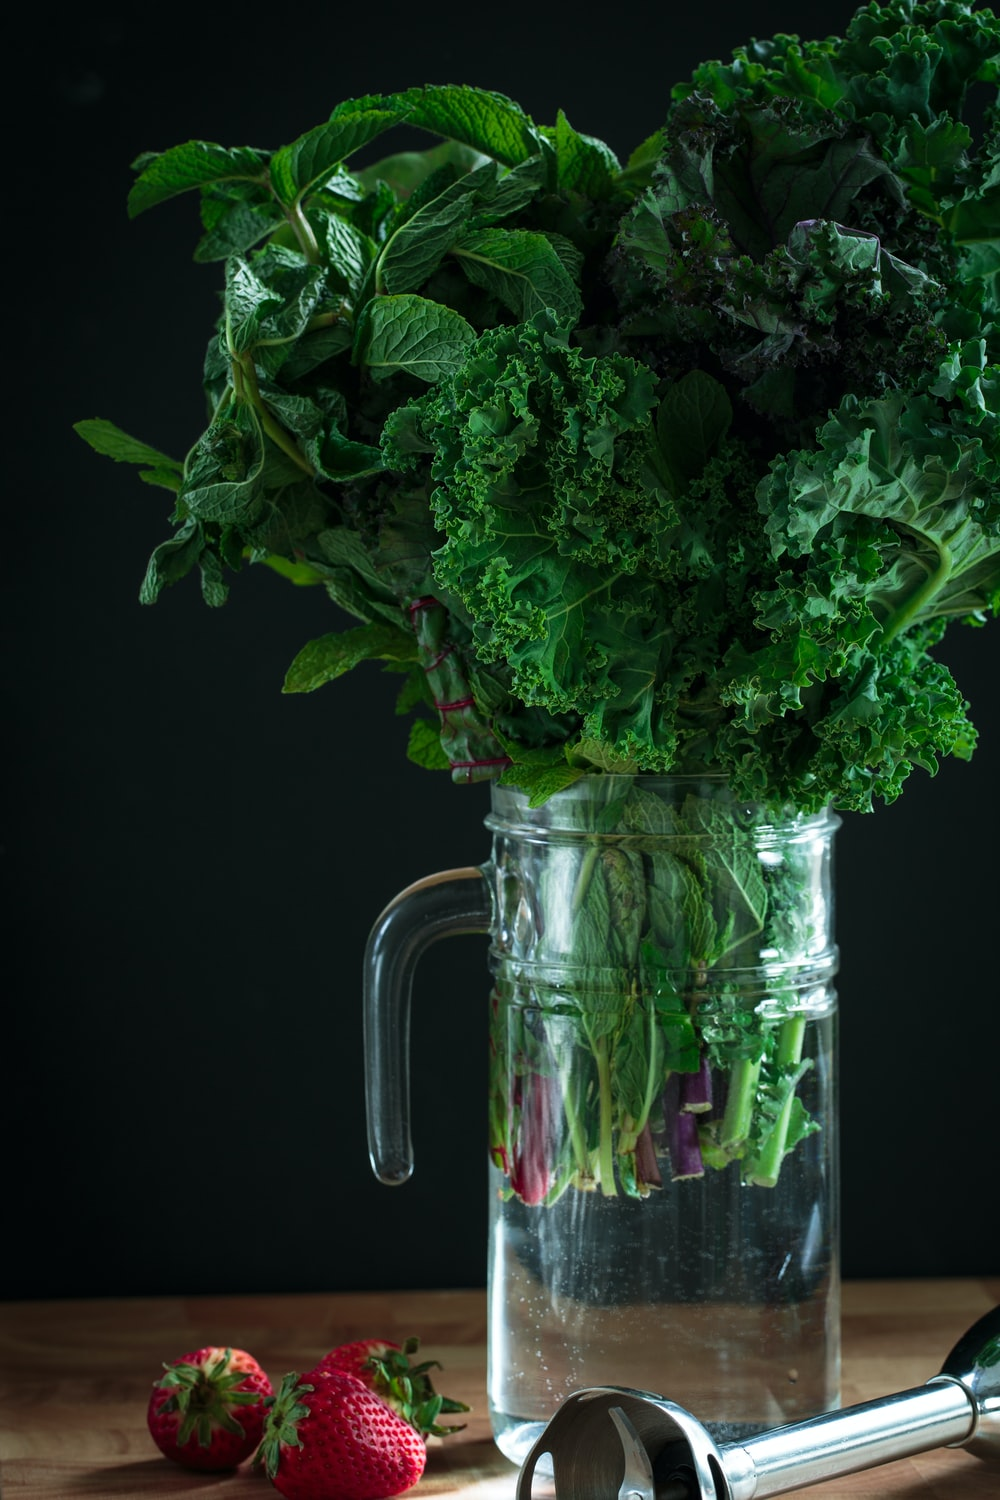 green vegetables on clear glass pitcher